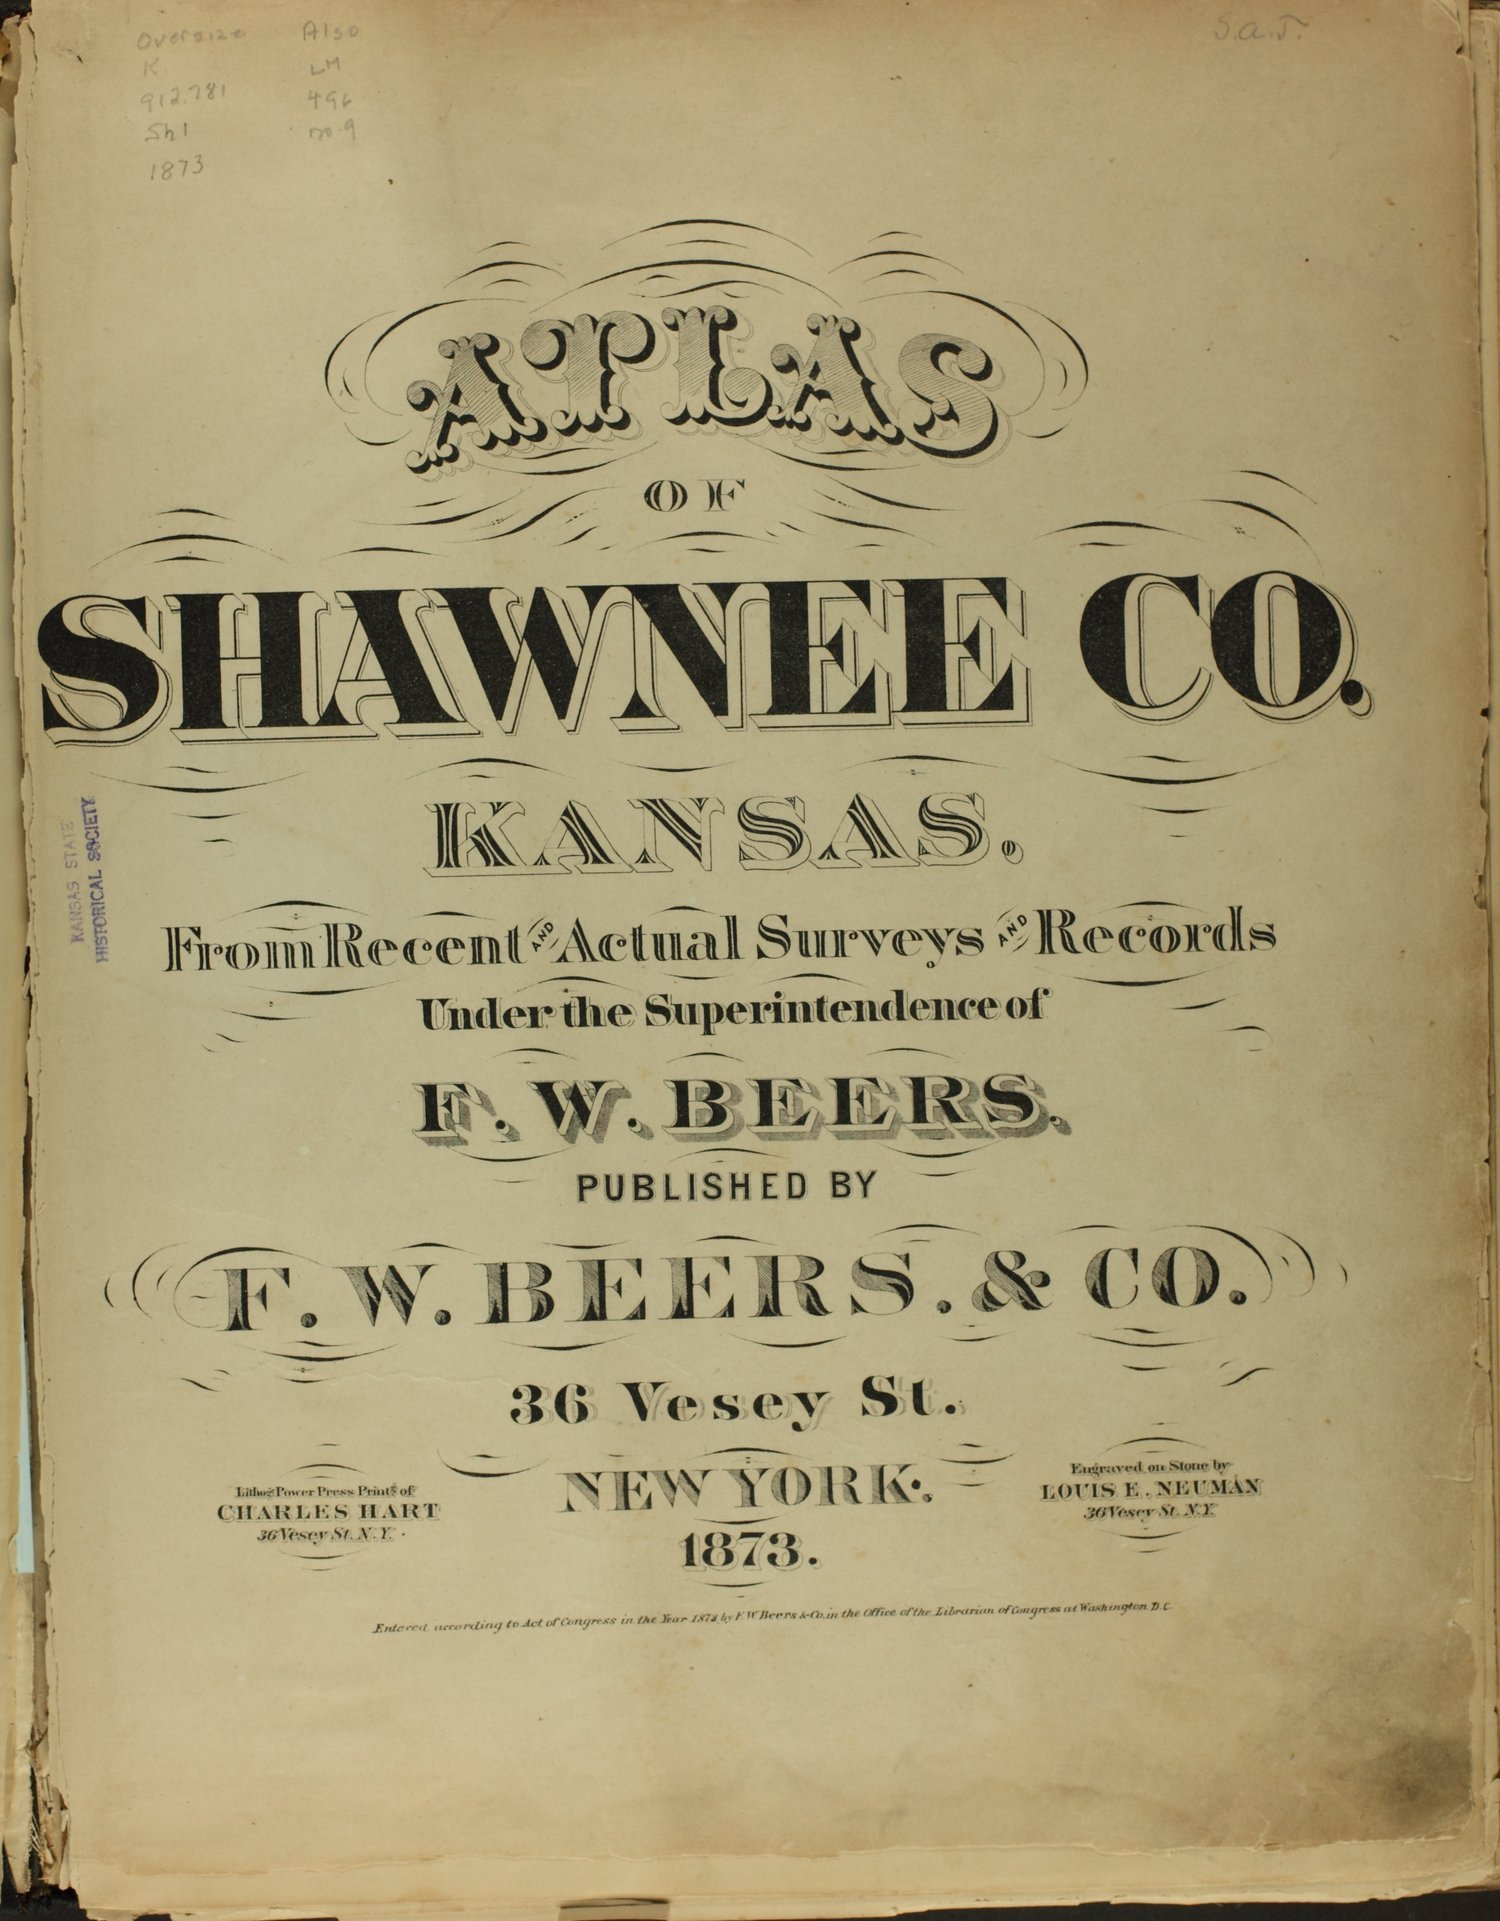 Atlas of Shawnee County, Kansas - Title Page